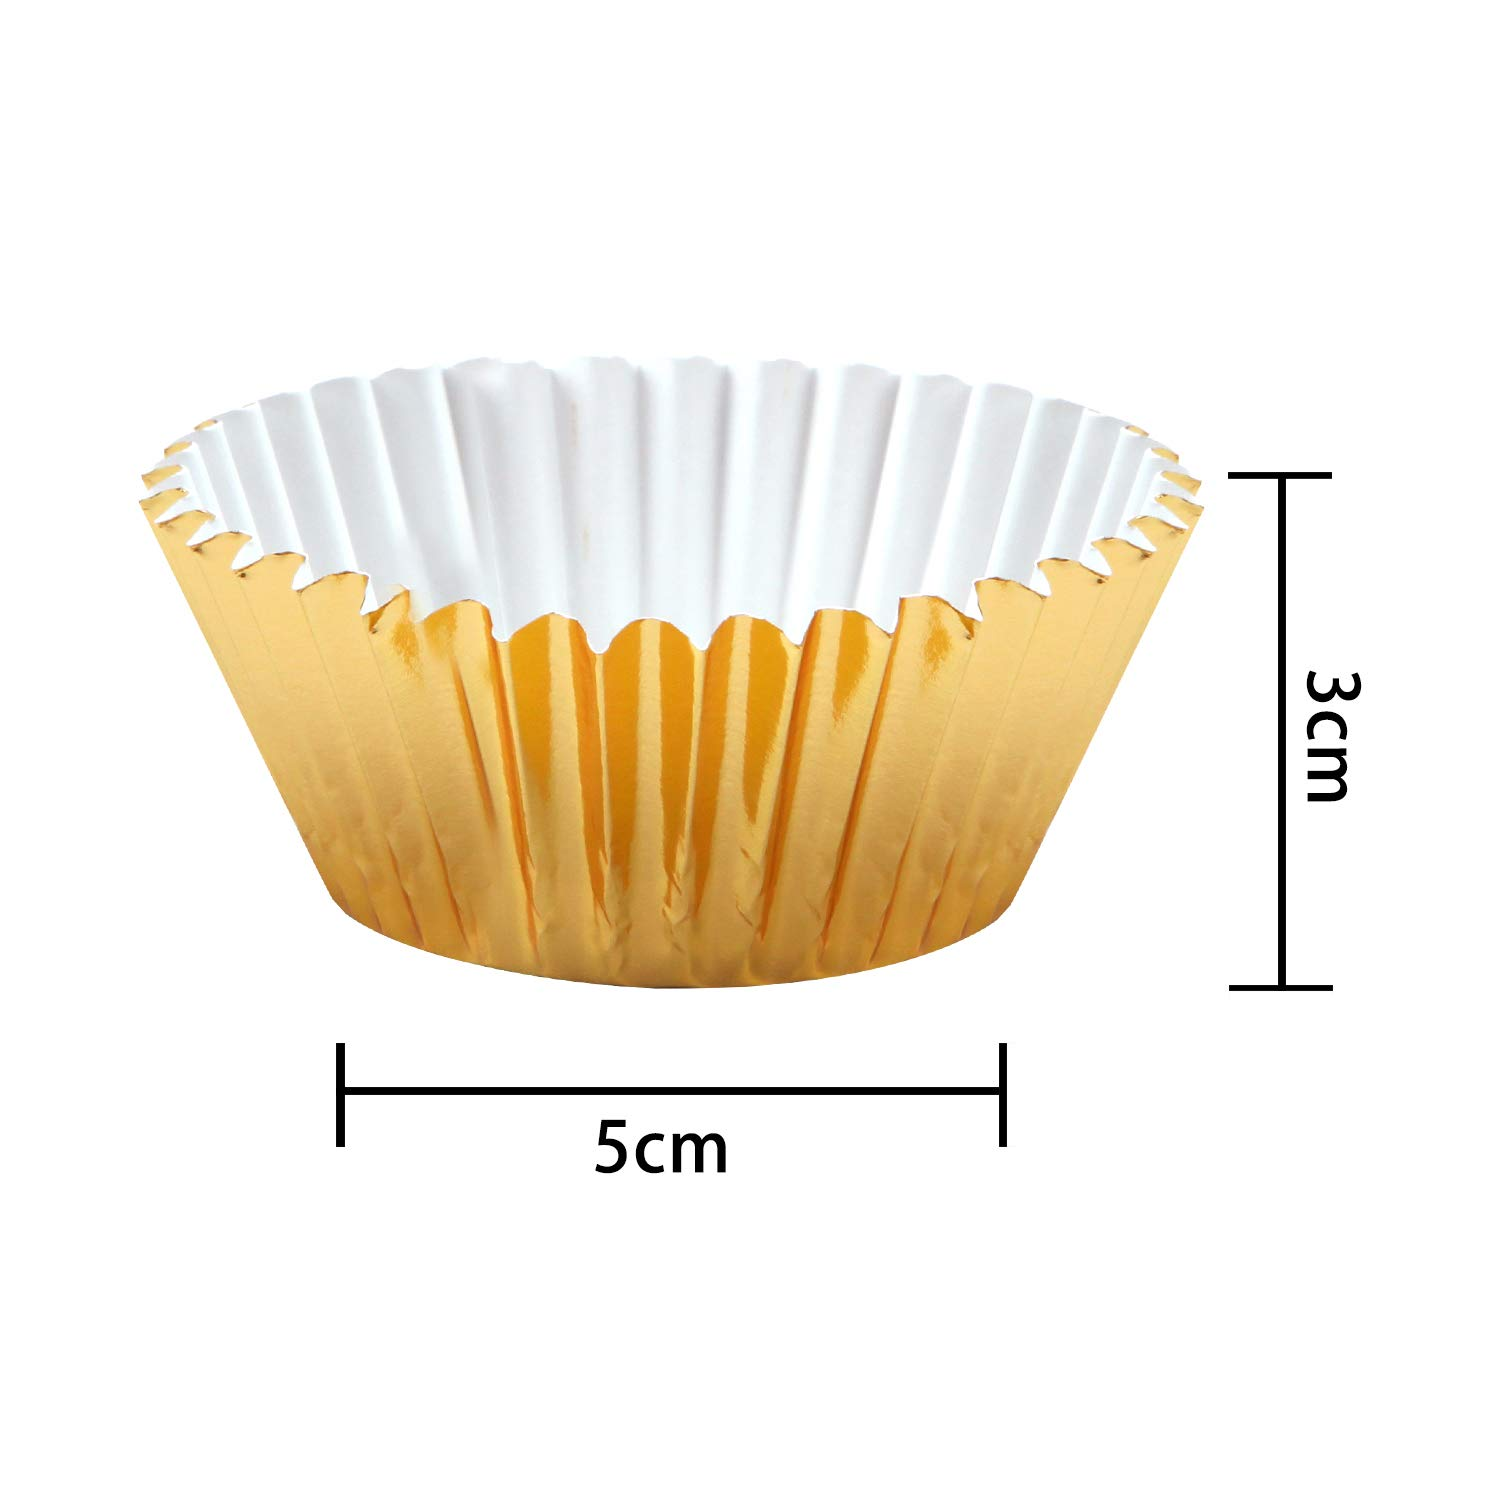 Sliver Silver and Rose Gold Elcoho 11 300 Pieces Foil Metallic Cupcake Liners Muffin Paper Cases Baking Cups